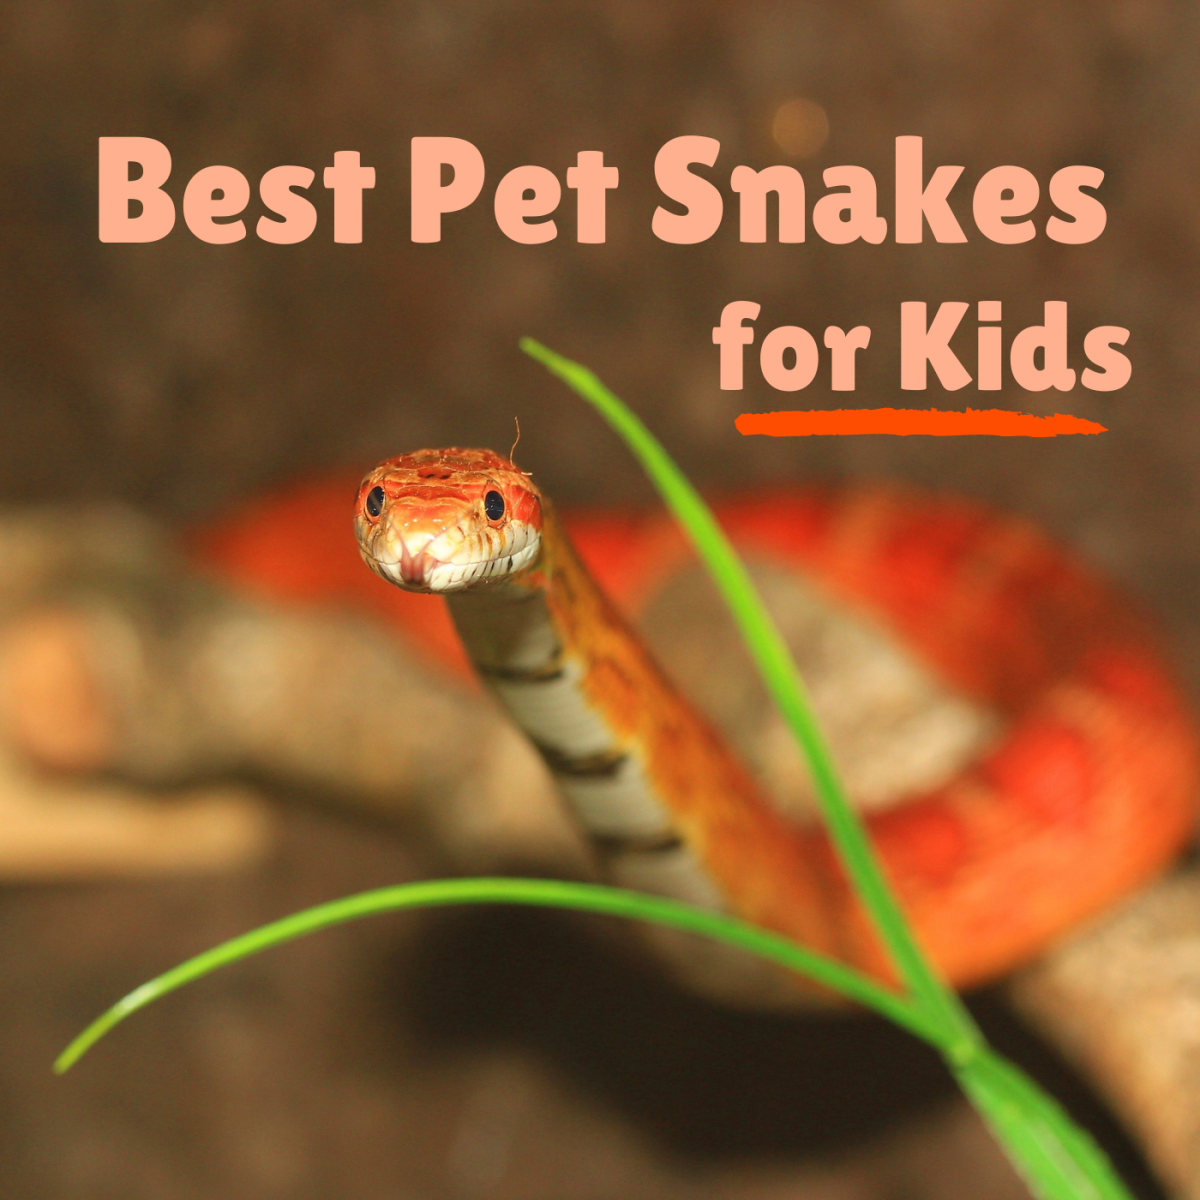 Learn about some snakes that make great pets for children or first-time snake owners!